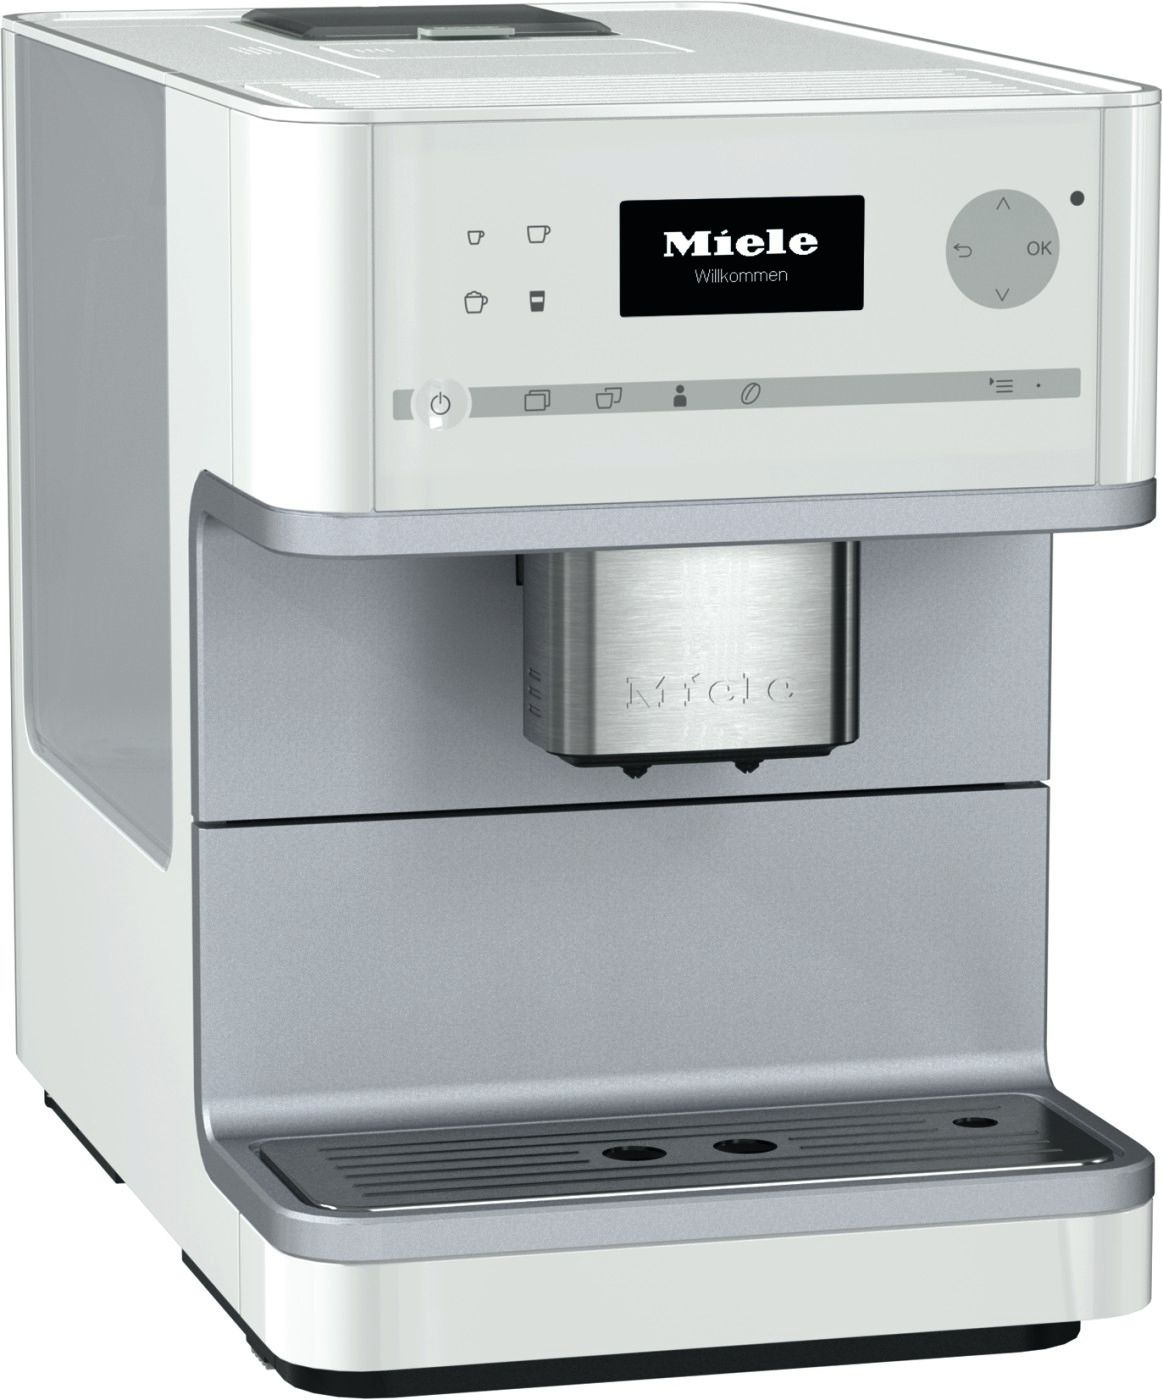 Miele White Countertop Coffee System Cm6110wh